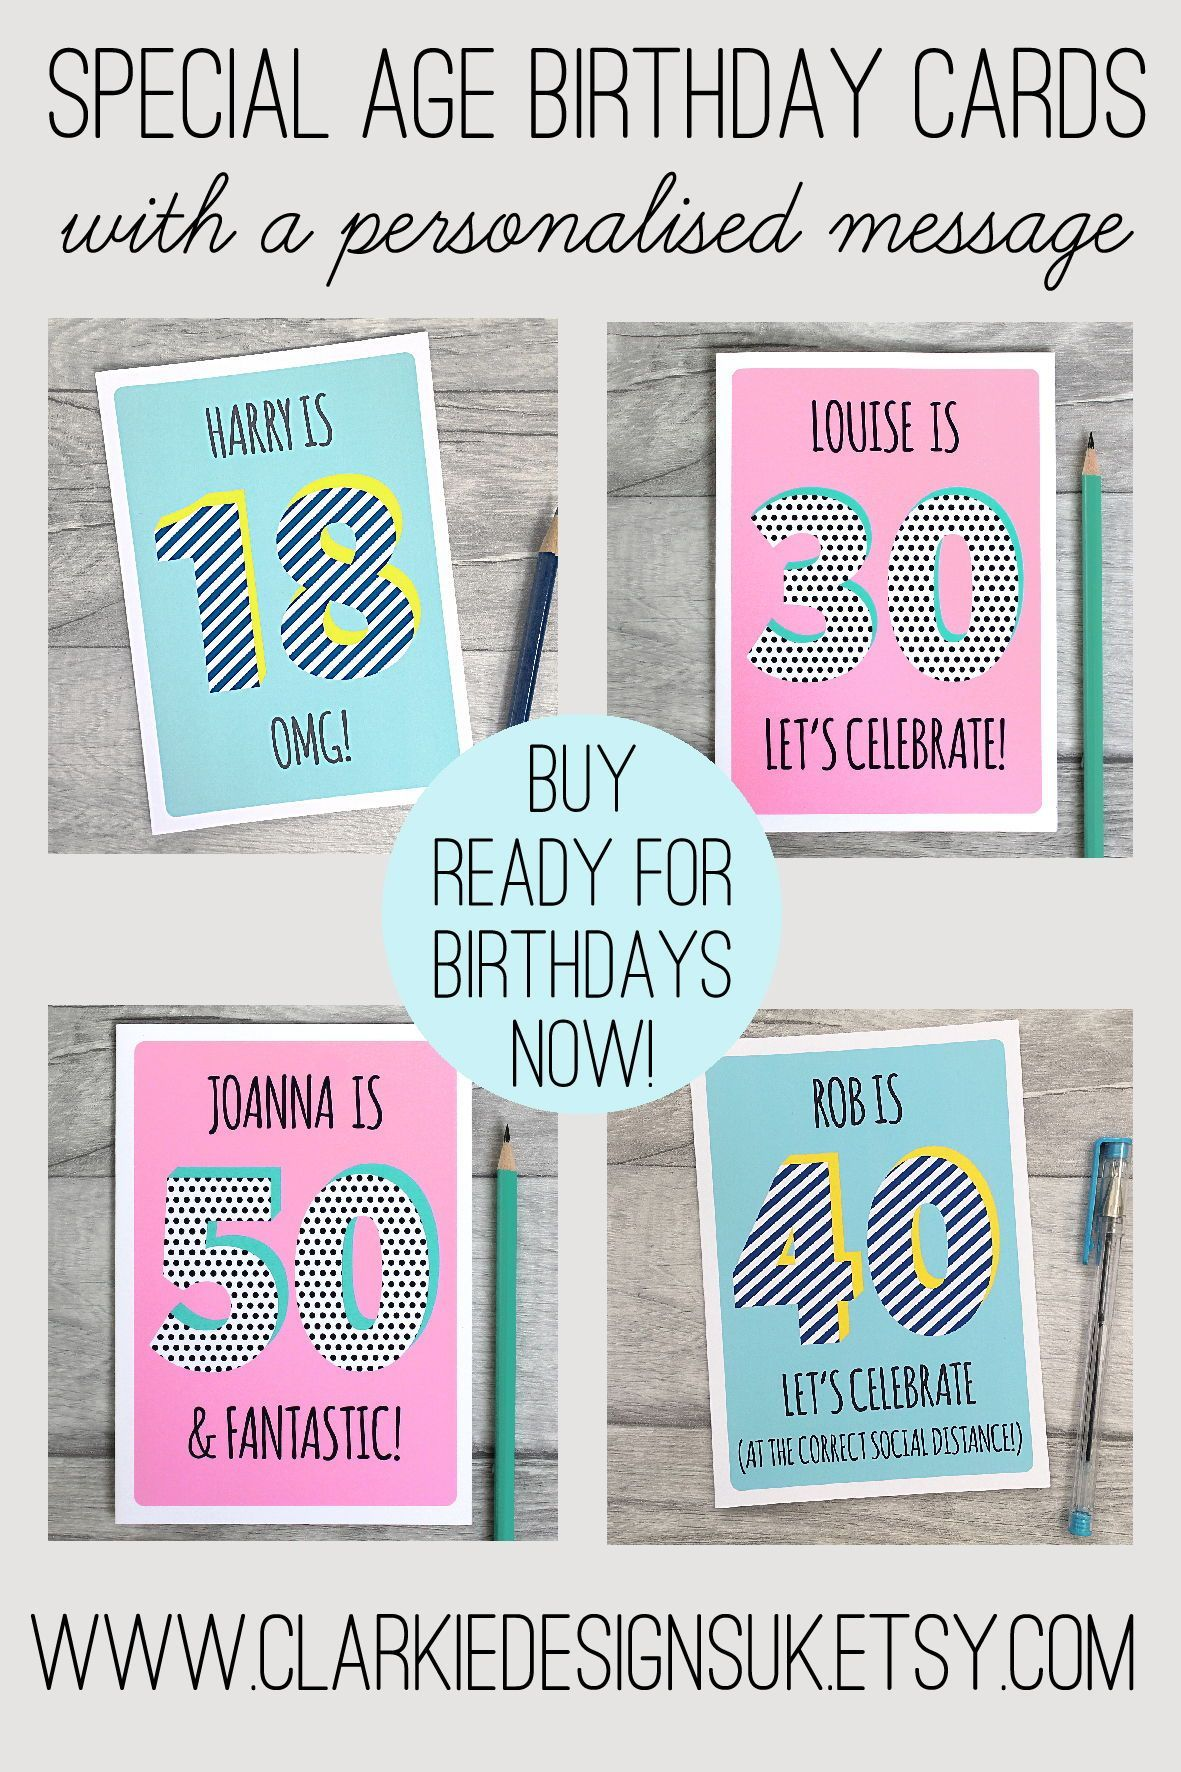 Personalised Birthday Cards Personalized Birthday Cards 18th Birthday Cards Birthday Cards